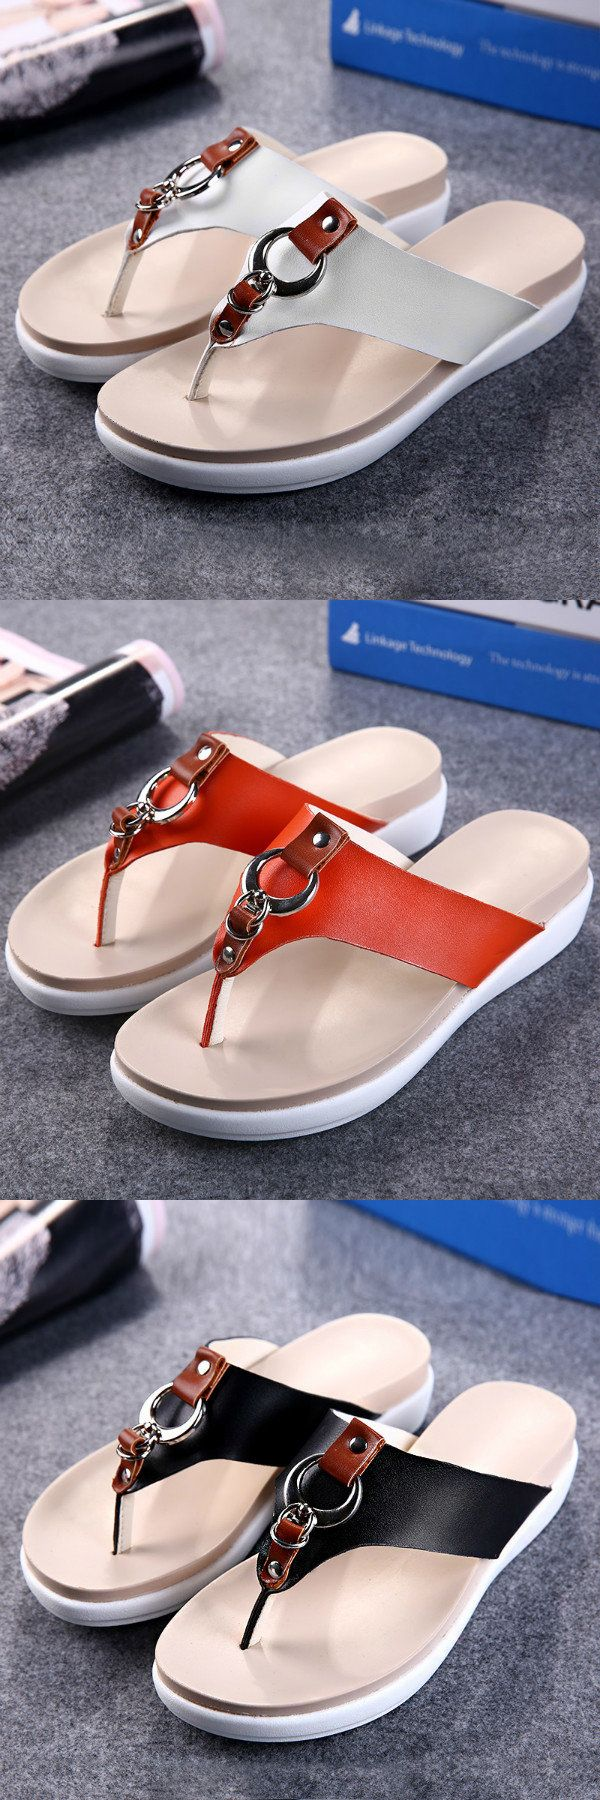 US$19.77 Casual Beach Slippers_Summer Women Sandals_Flats Sandals